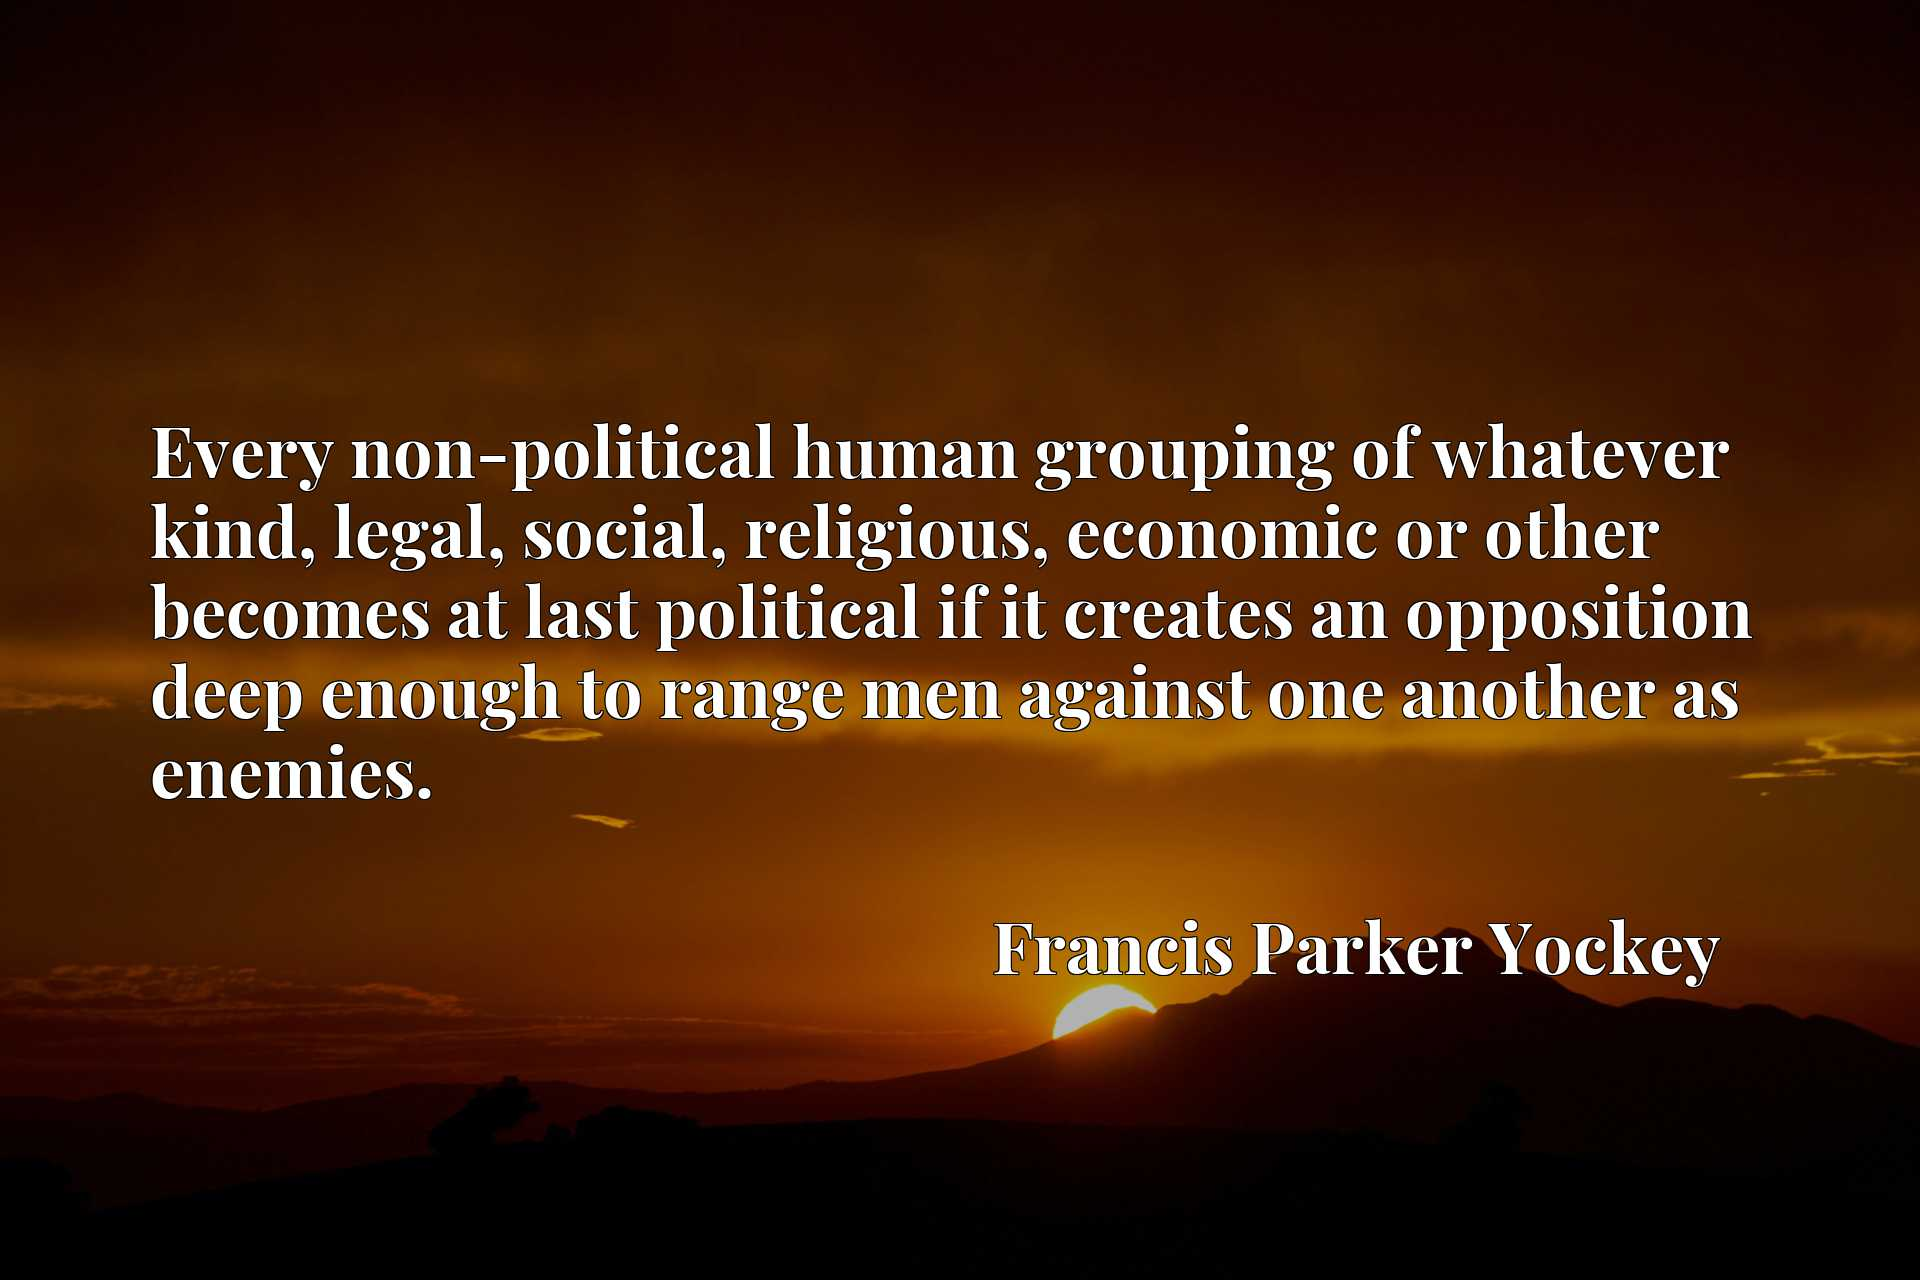 Quote Picture :Every non-political human grouping of whatever kind, legal, social, religious, economic or other becomes at last political if it creates an opposition deep enough to range men against one another as enemies.